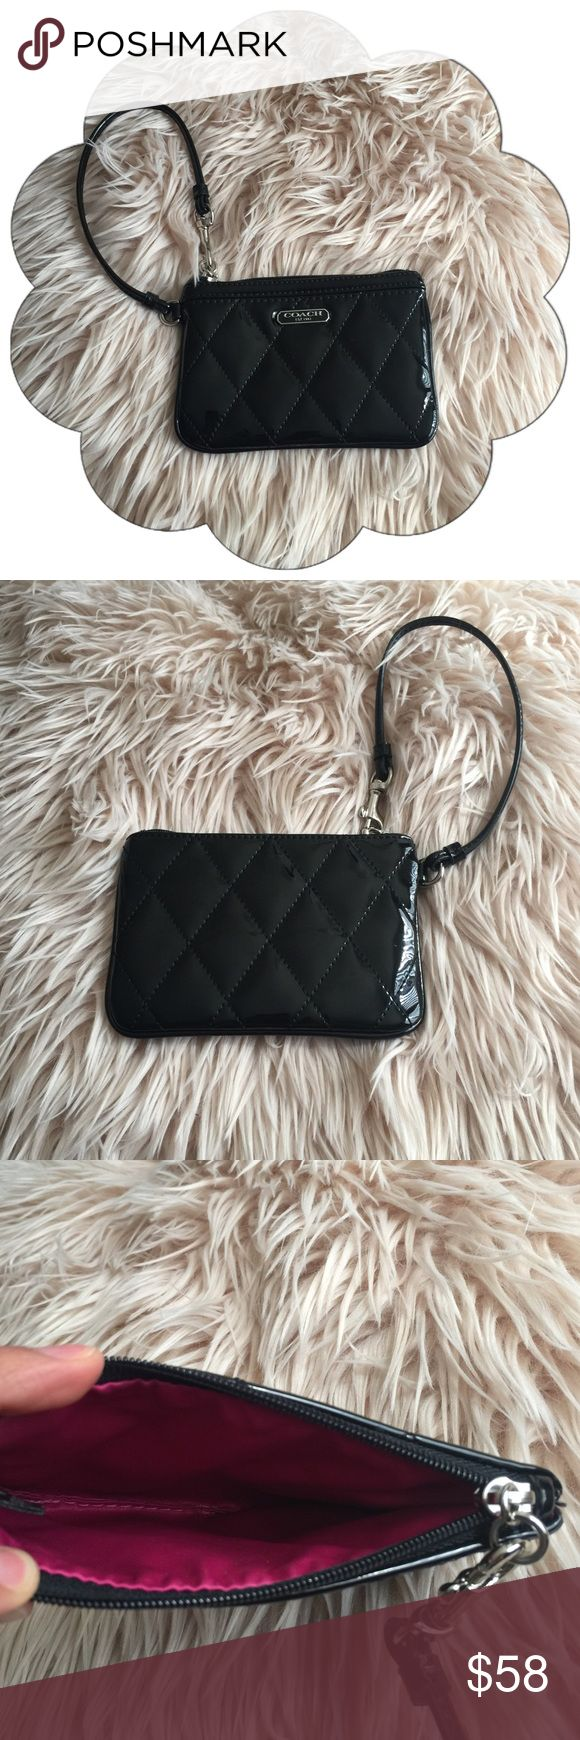 LOWEST Like new Coach Poppy Black Quilted Wristlet 100% Authentic Coach : Patent Leather : Fits cards cash lipgloss and keys : Like new Coach Bags Clutches & Wristlets